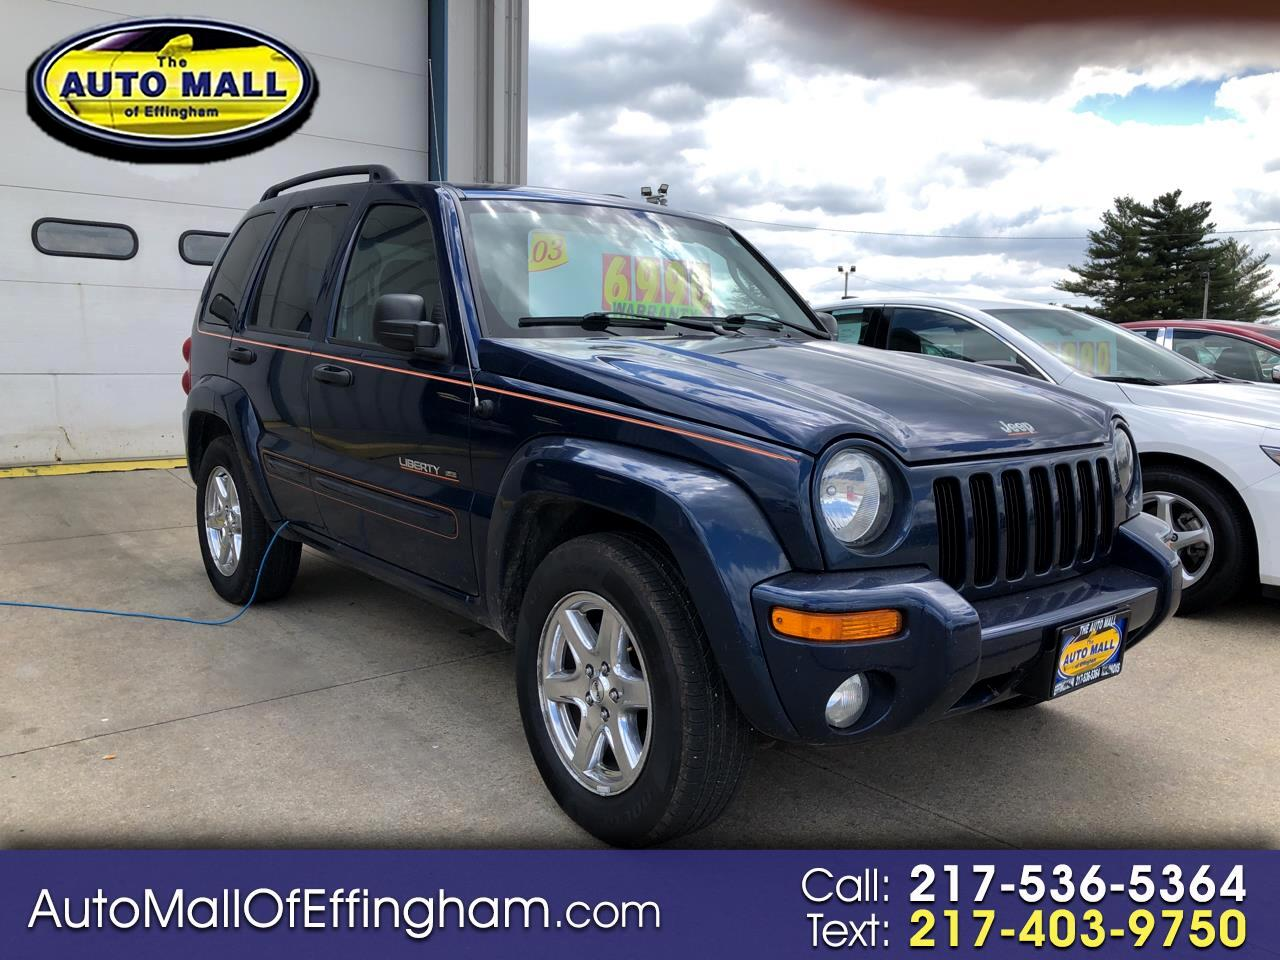 2003 Jeep Liberty 4dr Limited 4WD